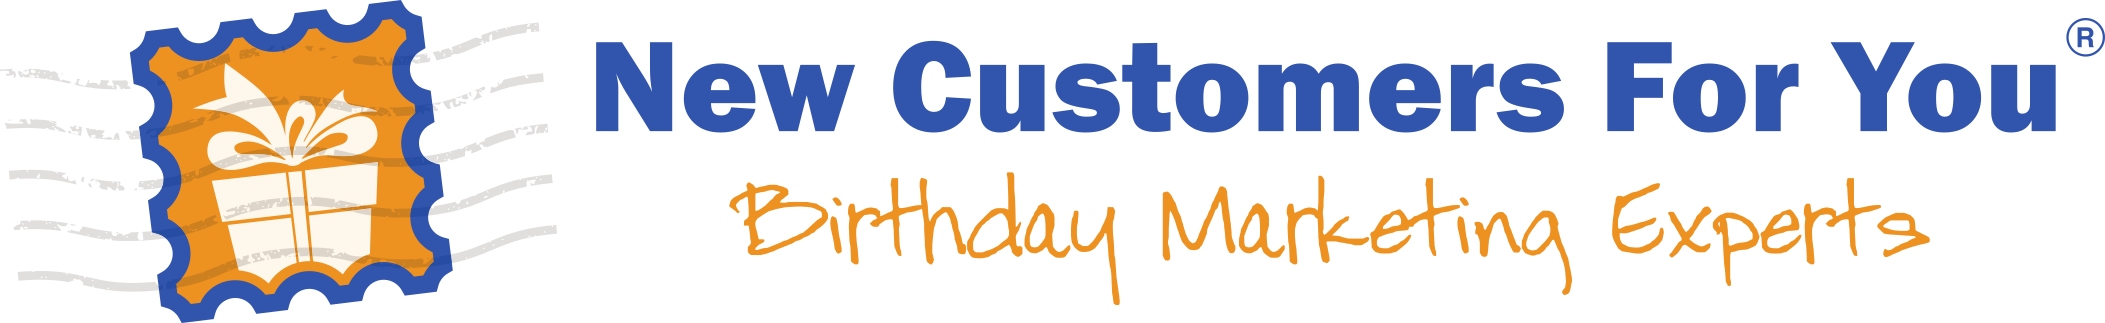 Increase Revenue using Birthdays | Birthday Mailers, Marketing, Printing